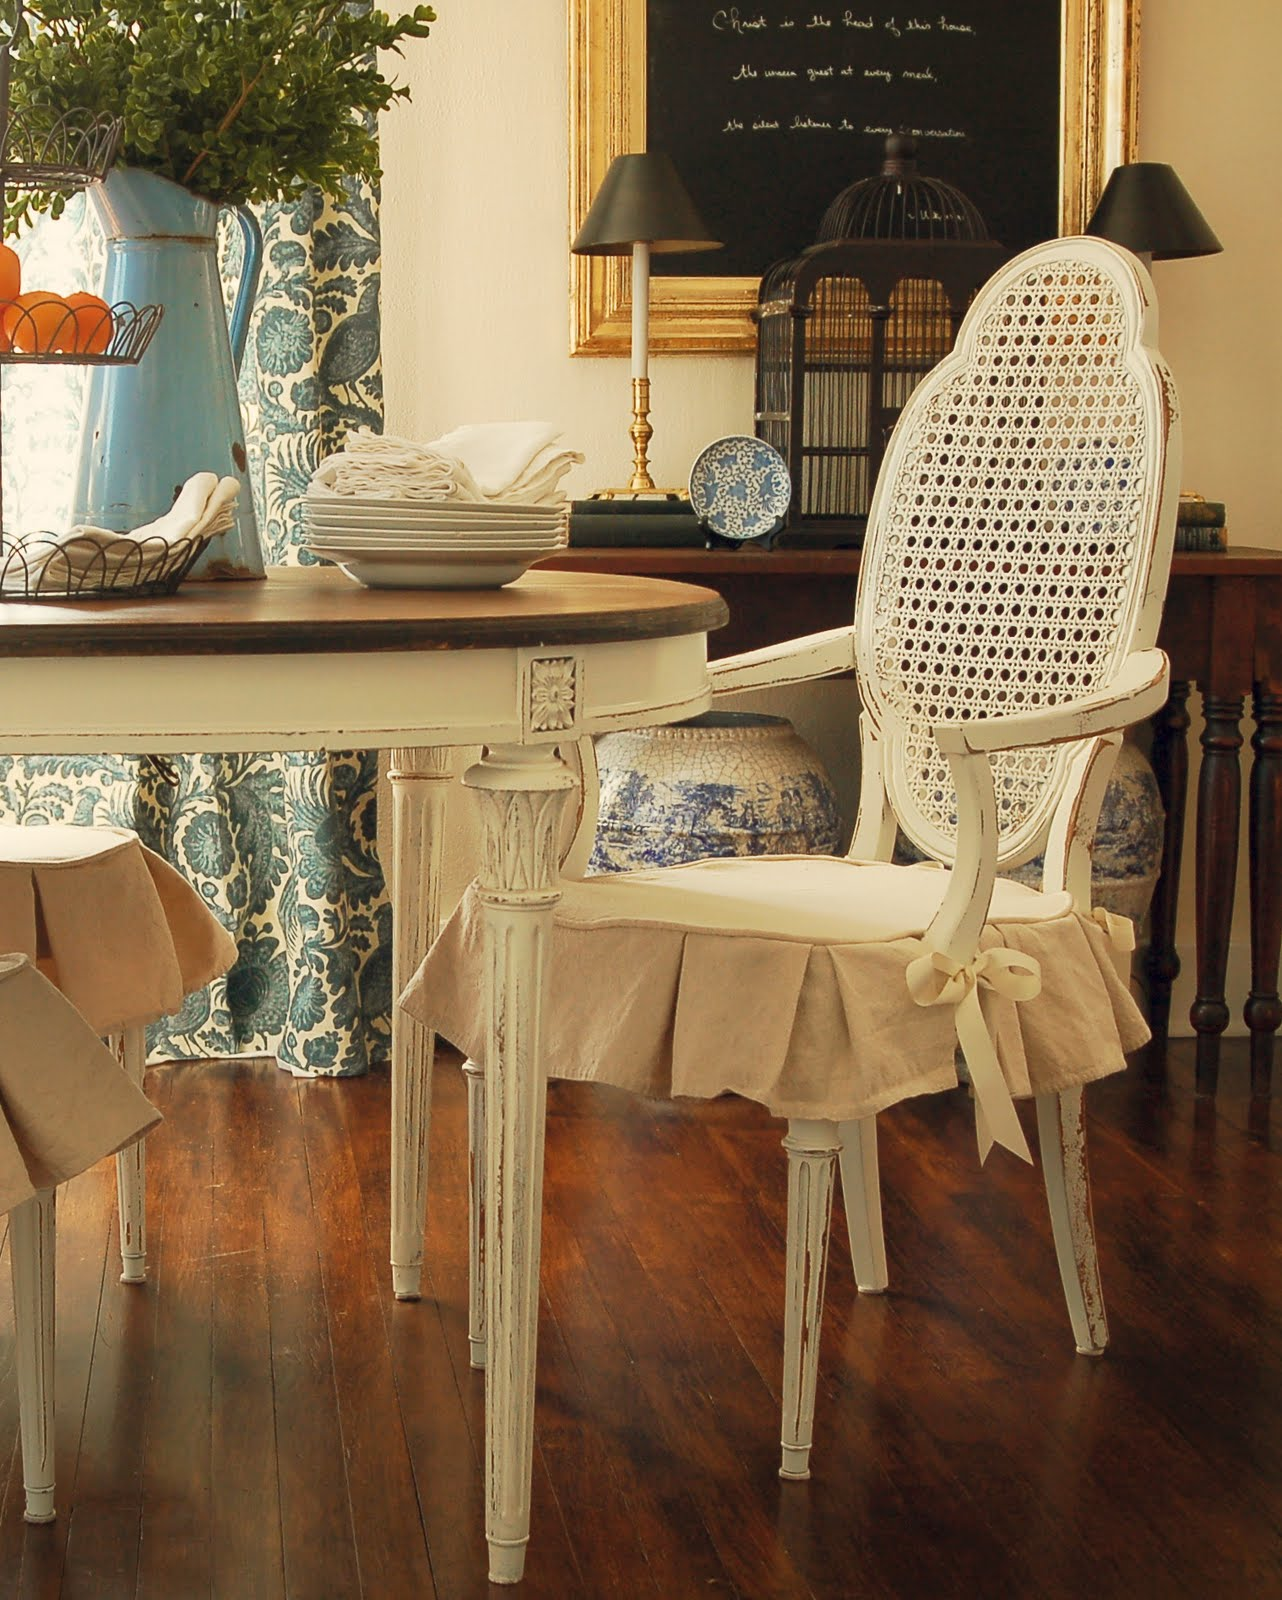 Dining Chair Slipcover Tutorial - Miss Mustard Seed - Dining Room Chair Slipcovers